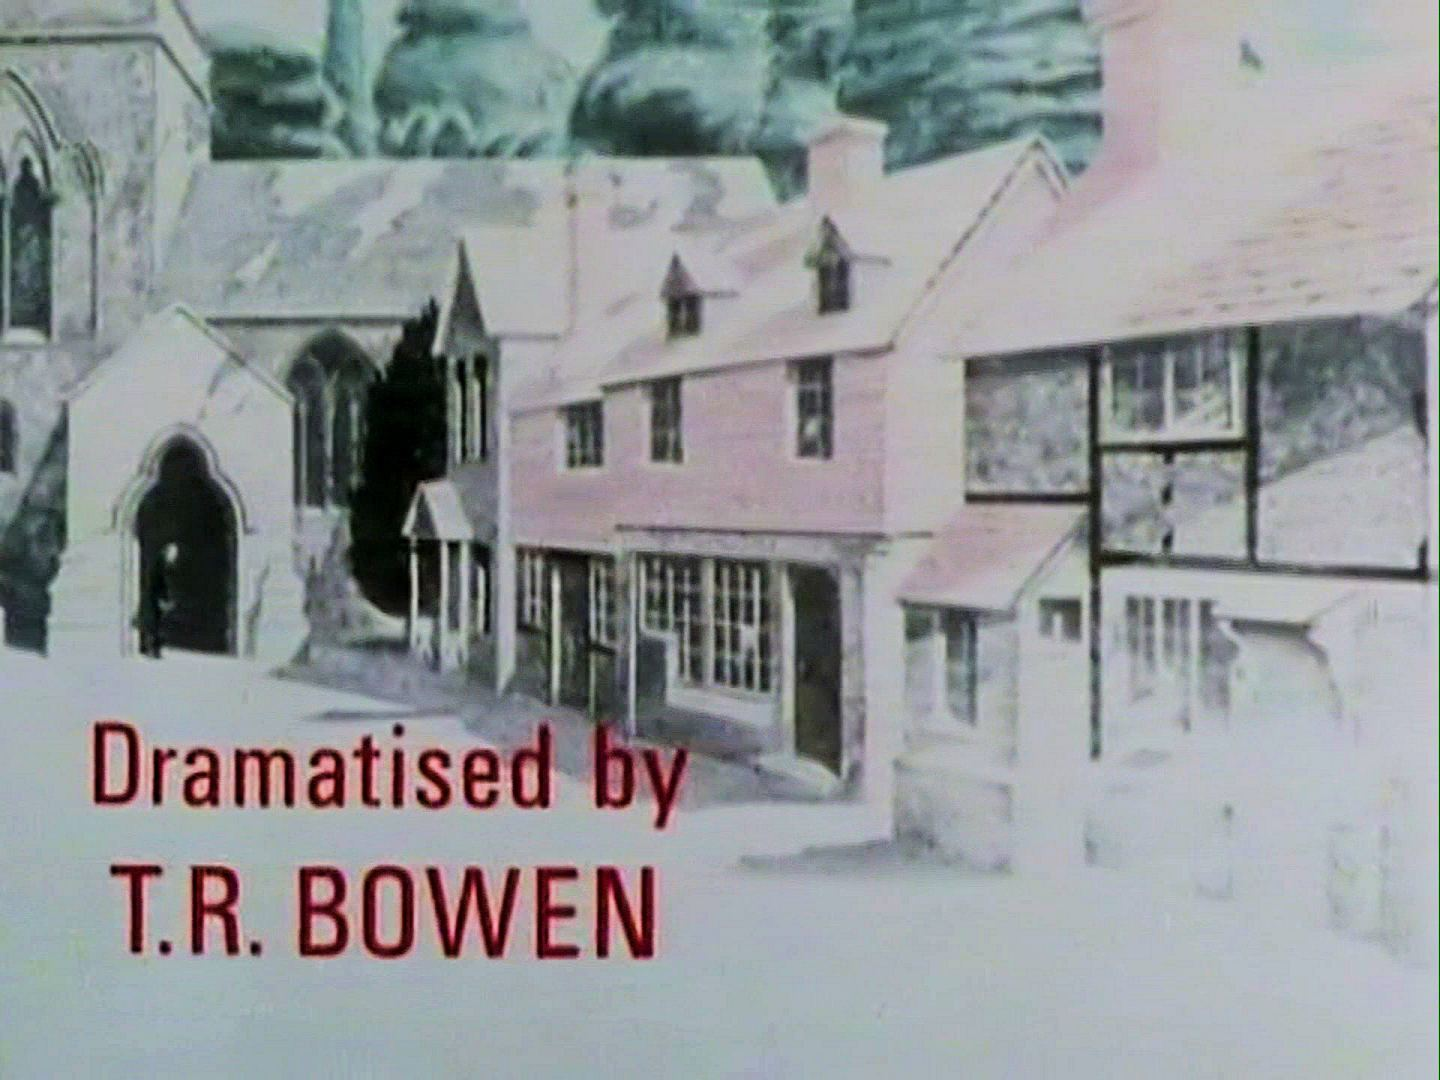 Main title from the 1986 'The Murder at the Vicarage' episode of Agatha Christie's Miss Marple (1984-1992) (2). Dramatised by T R Bowen